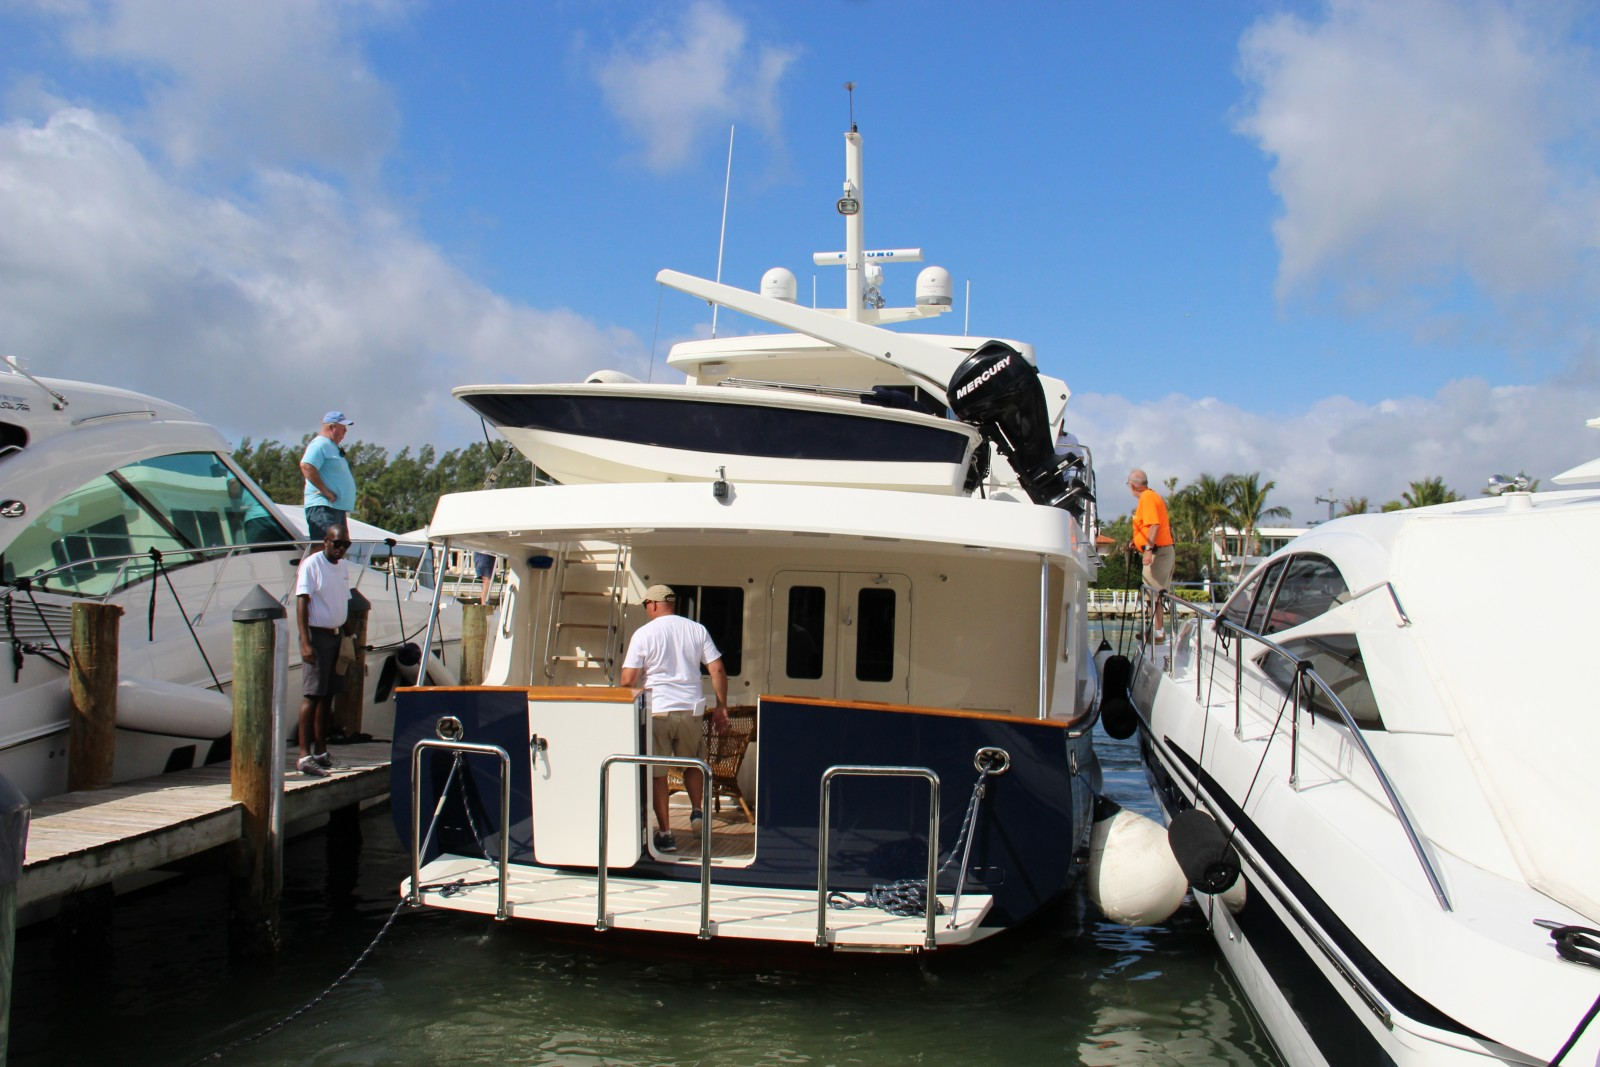 Yachts continue to file in at the docks in at Yachts Miami Boat Show on Feb. 4.